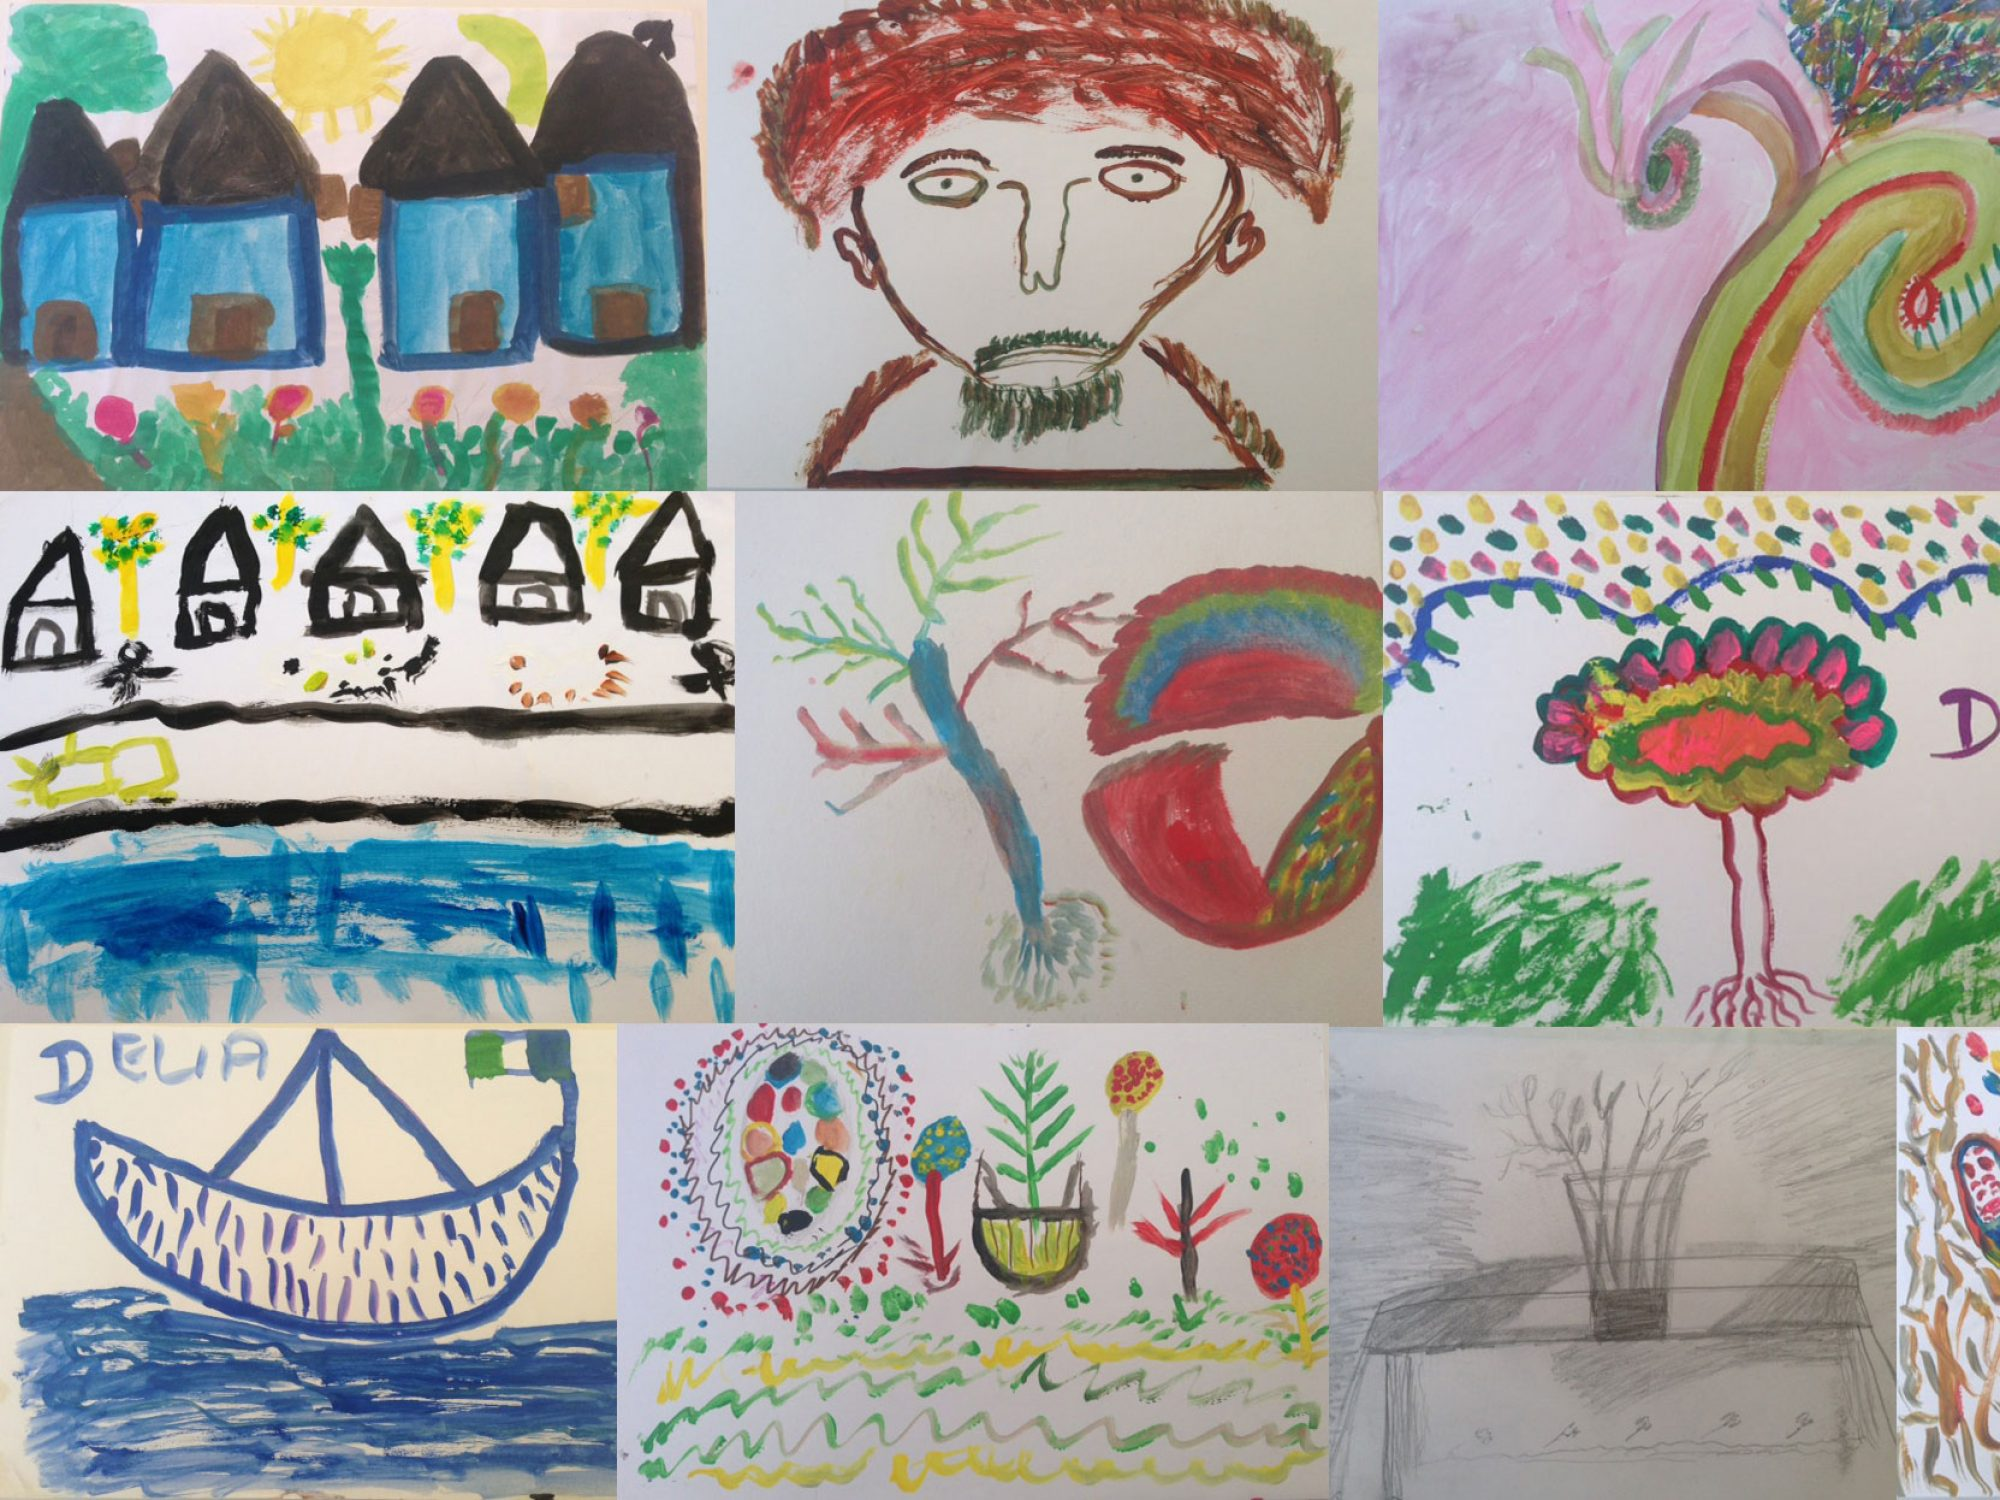 A collage of many smaller drawings created with bright paints of faces, houses, animals and plants